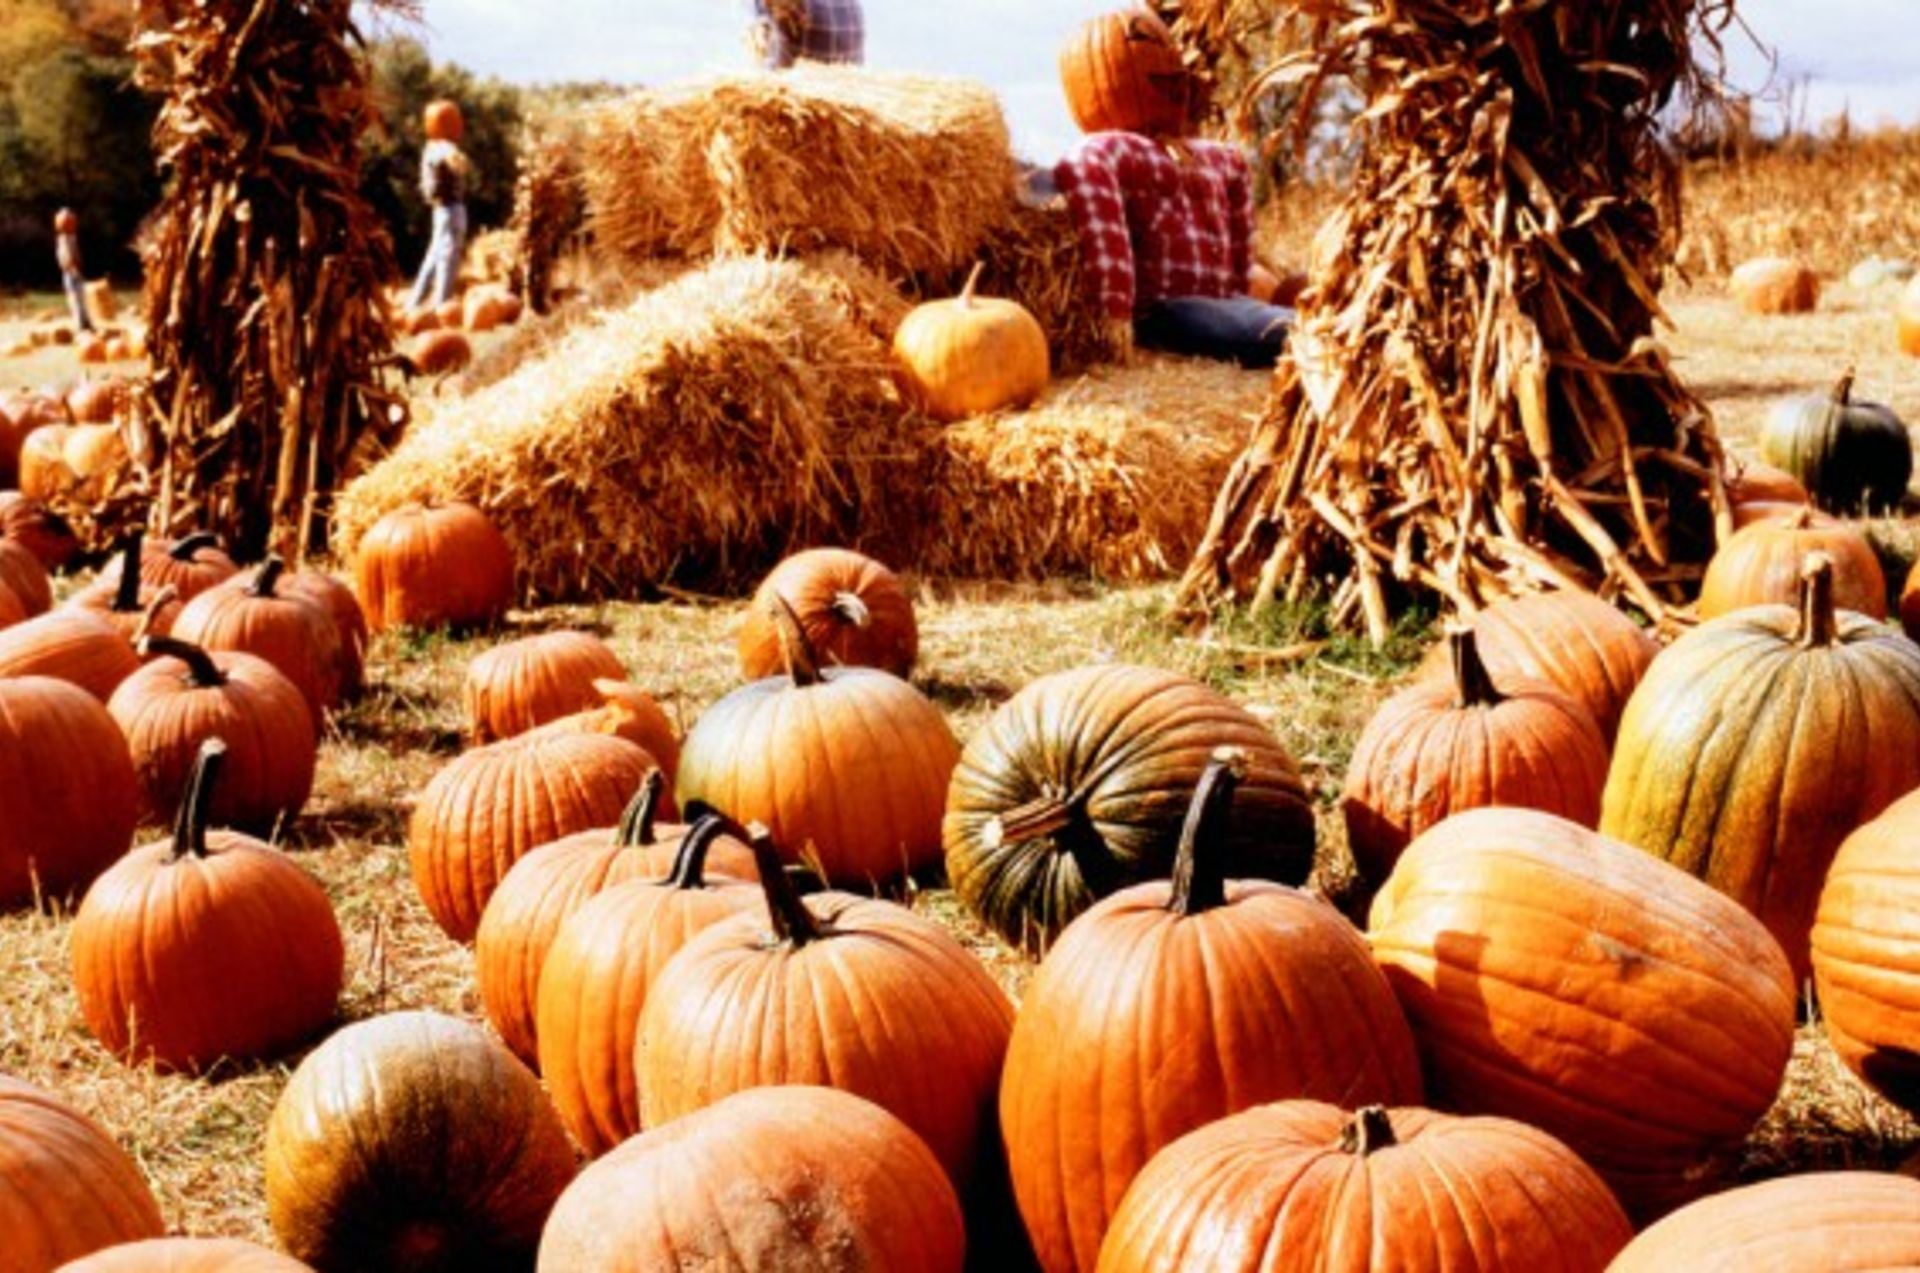 The Top 10 Fall Festivals to Fall In Love With In The Ozarks!